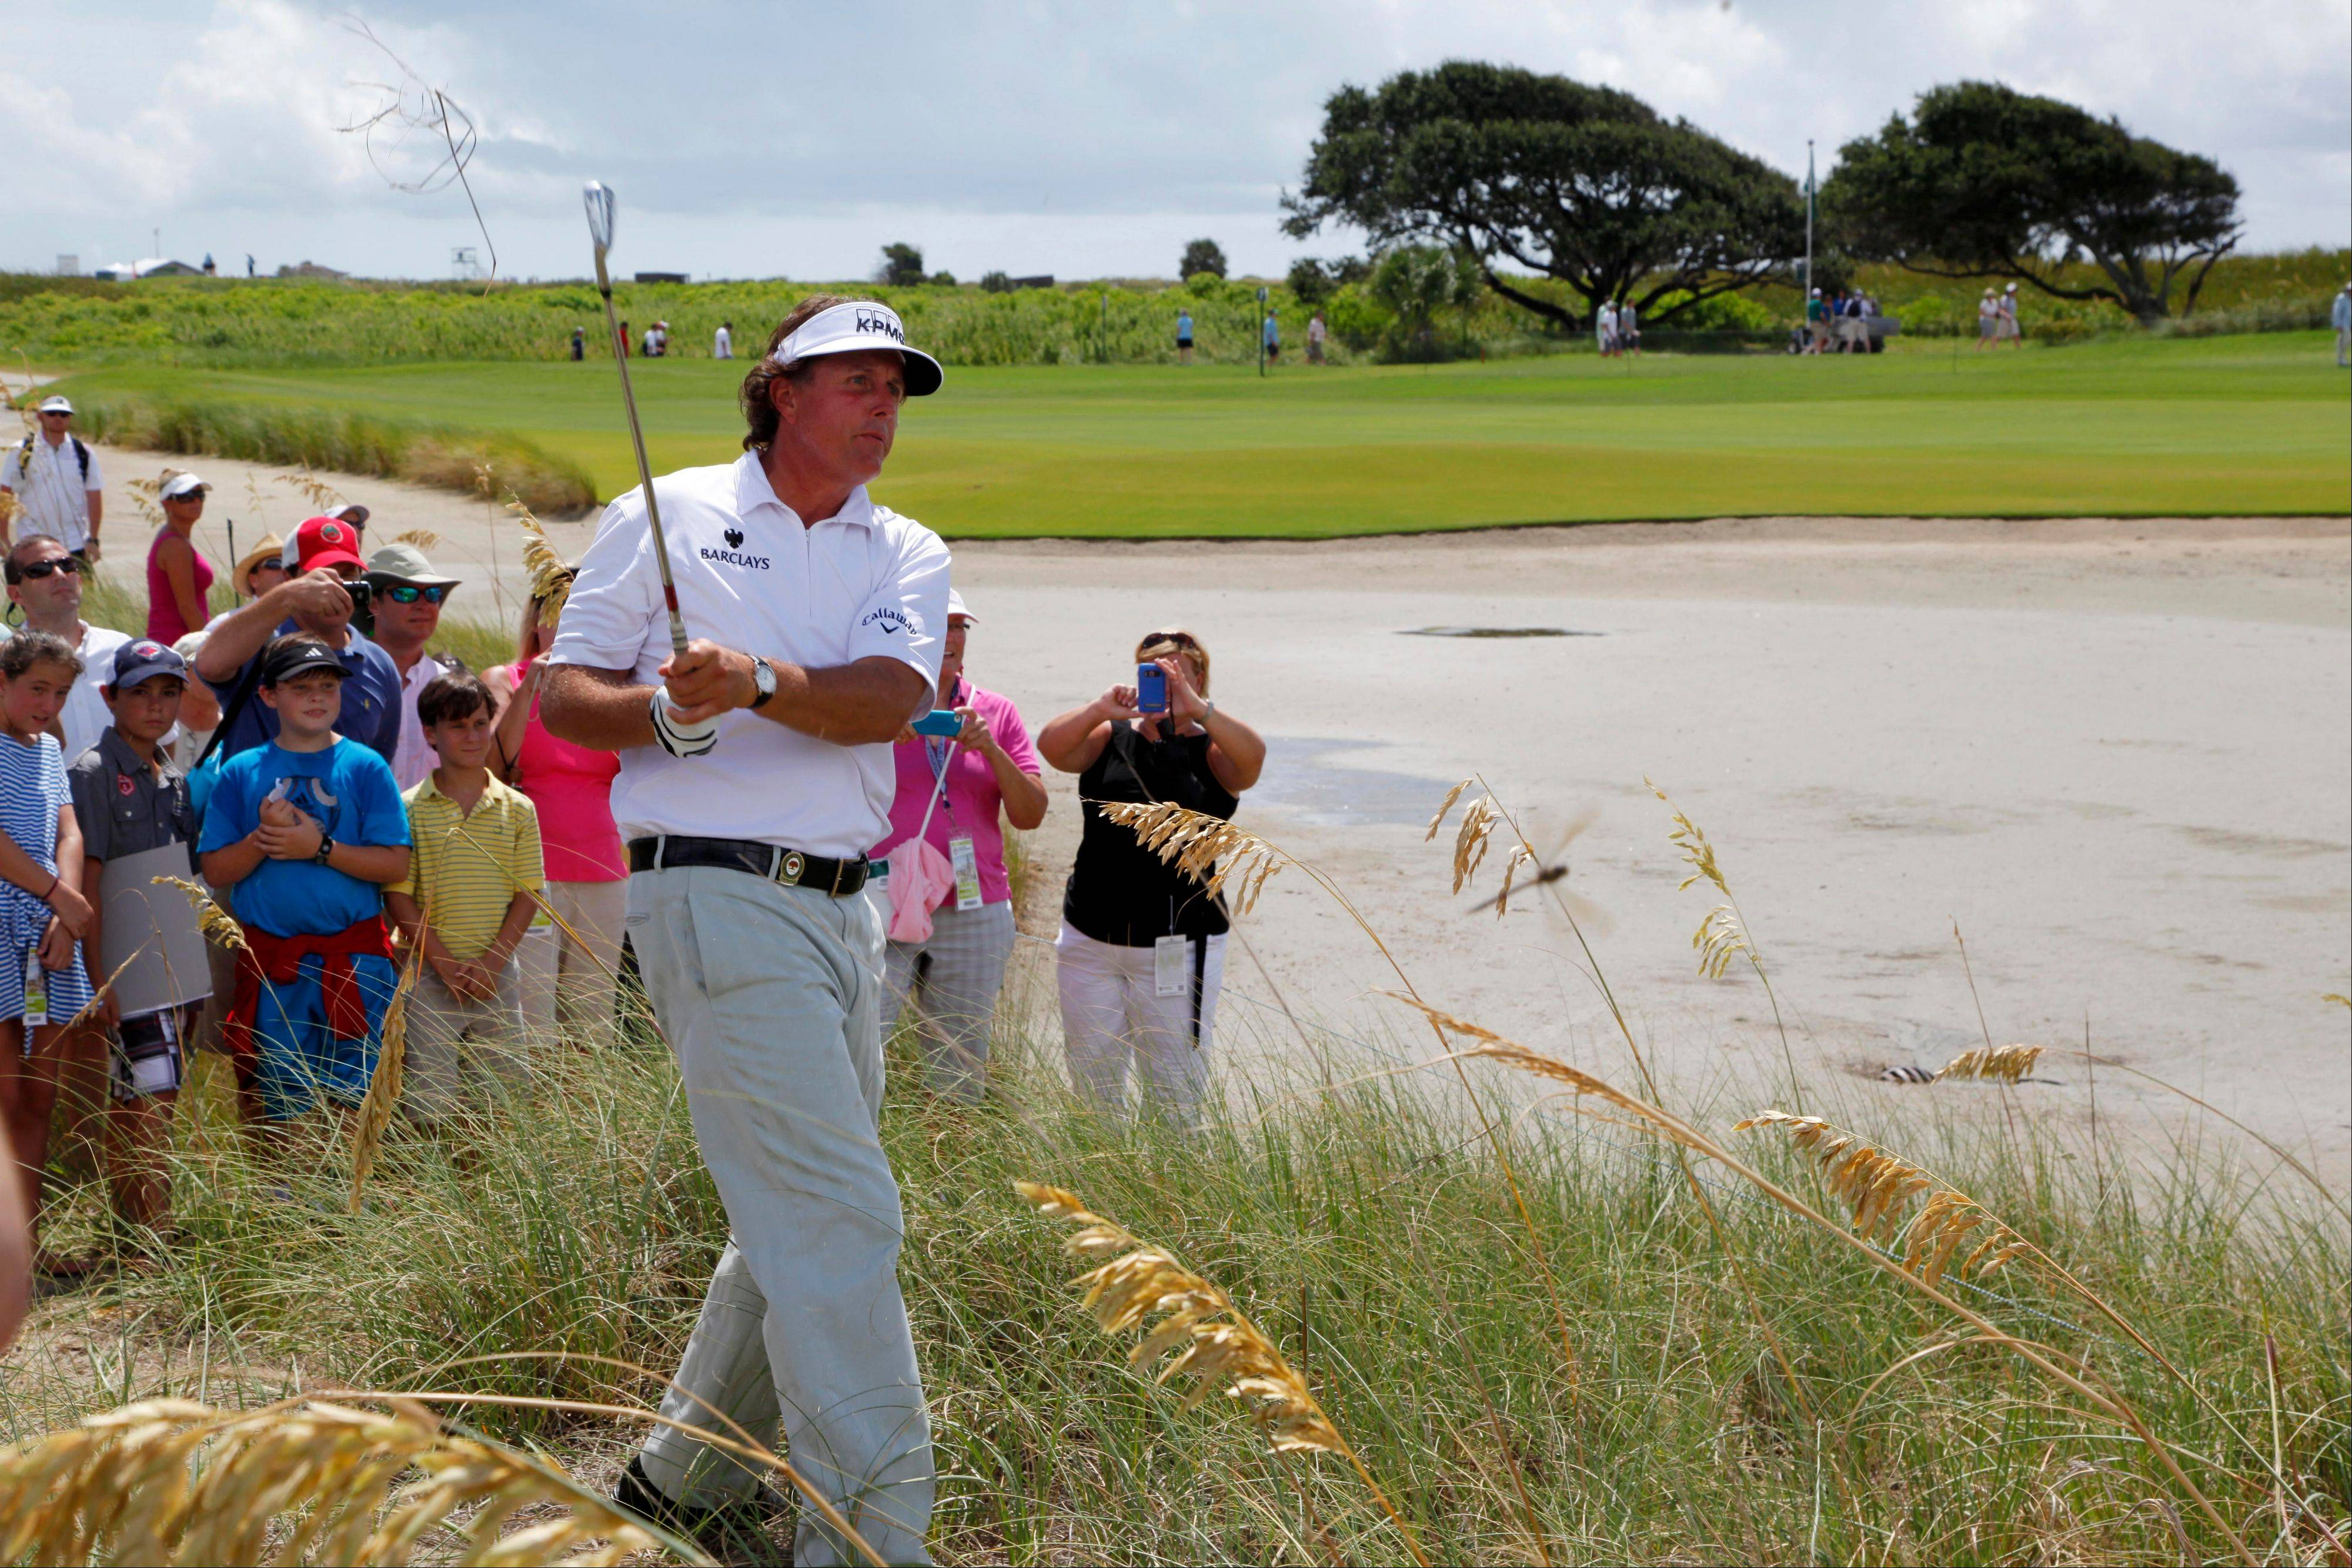 Phil Mickelson watches his shot out of the rough along the seventh hole Tuesday during a practice round for the PGA Championship on the Ocean Course of the Kiawah Island Golf Club in Kiawah Island, S.C.